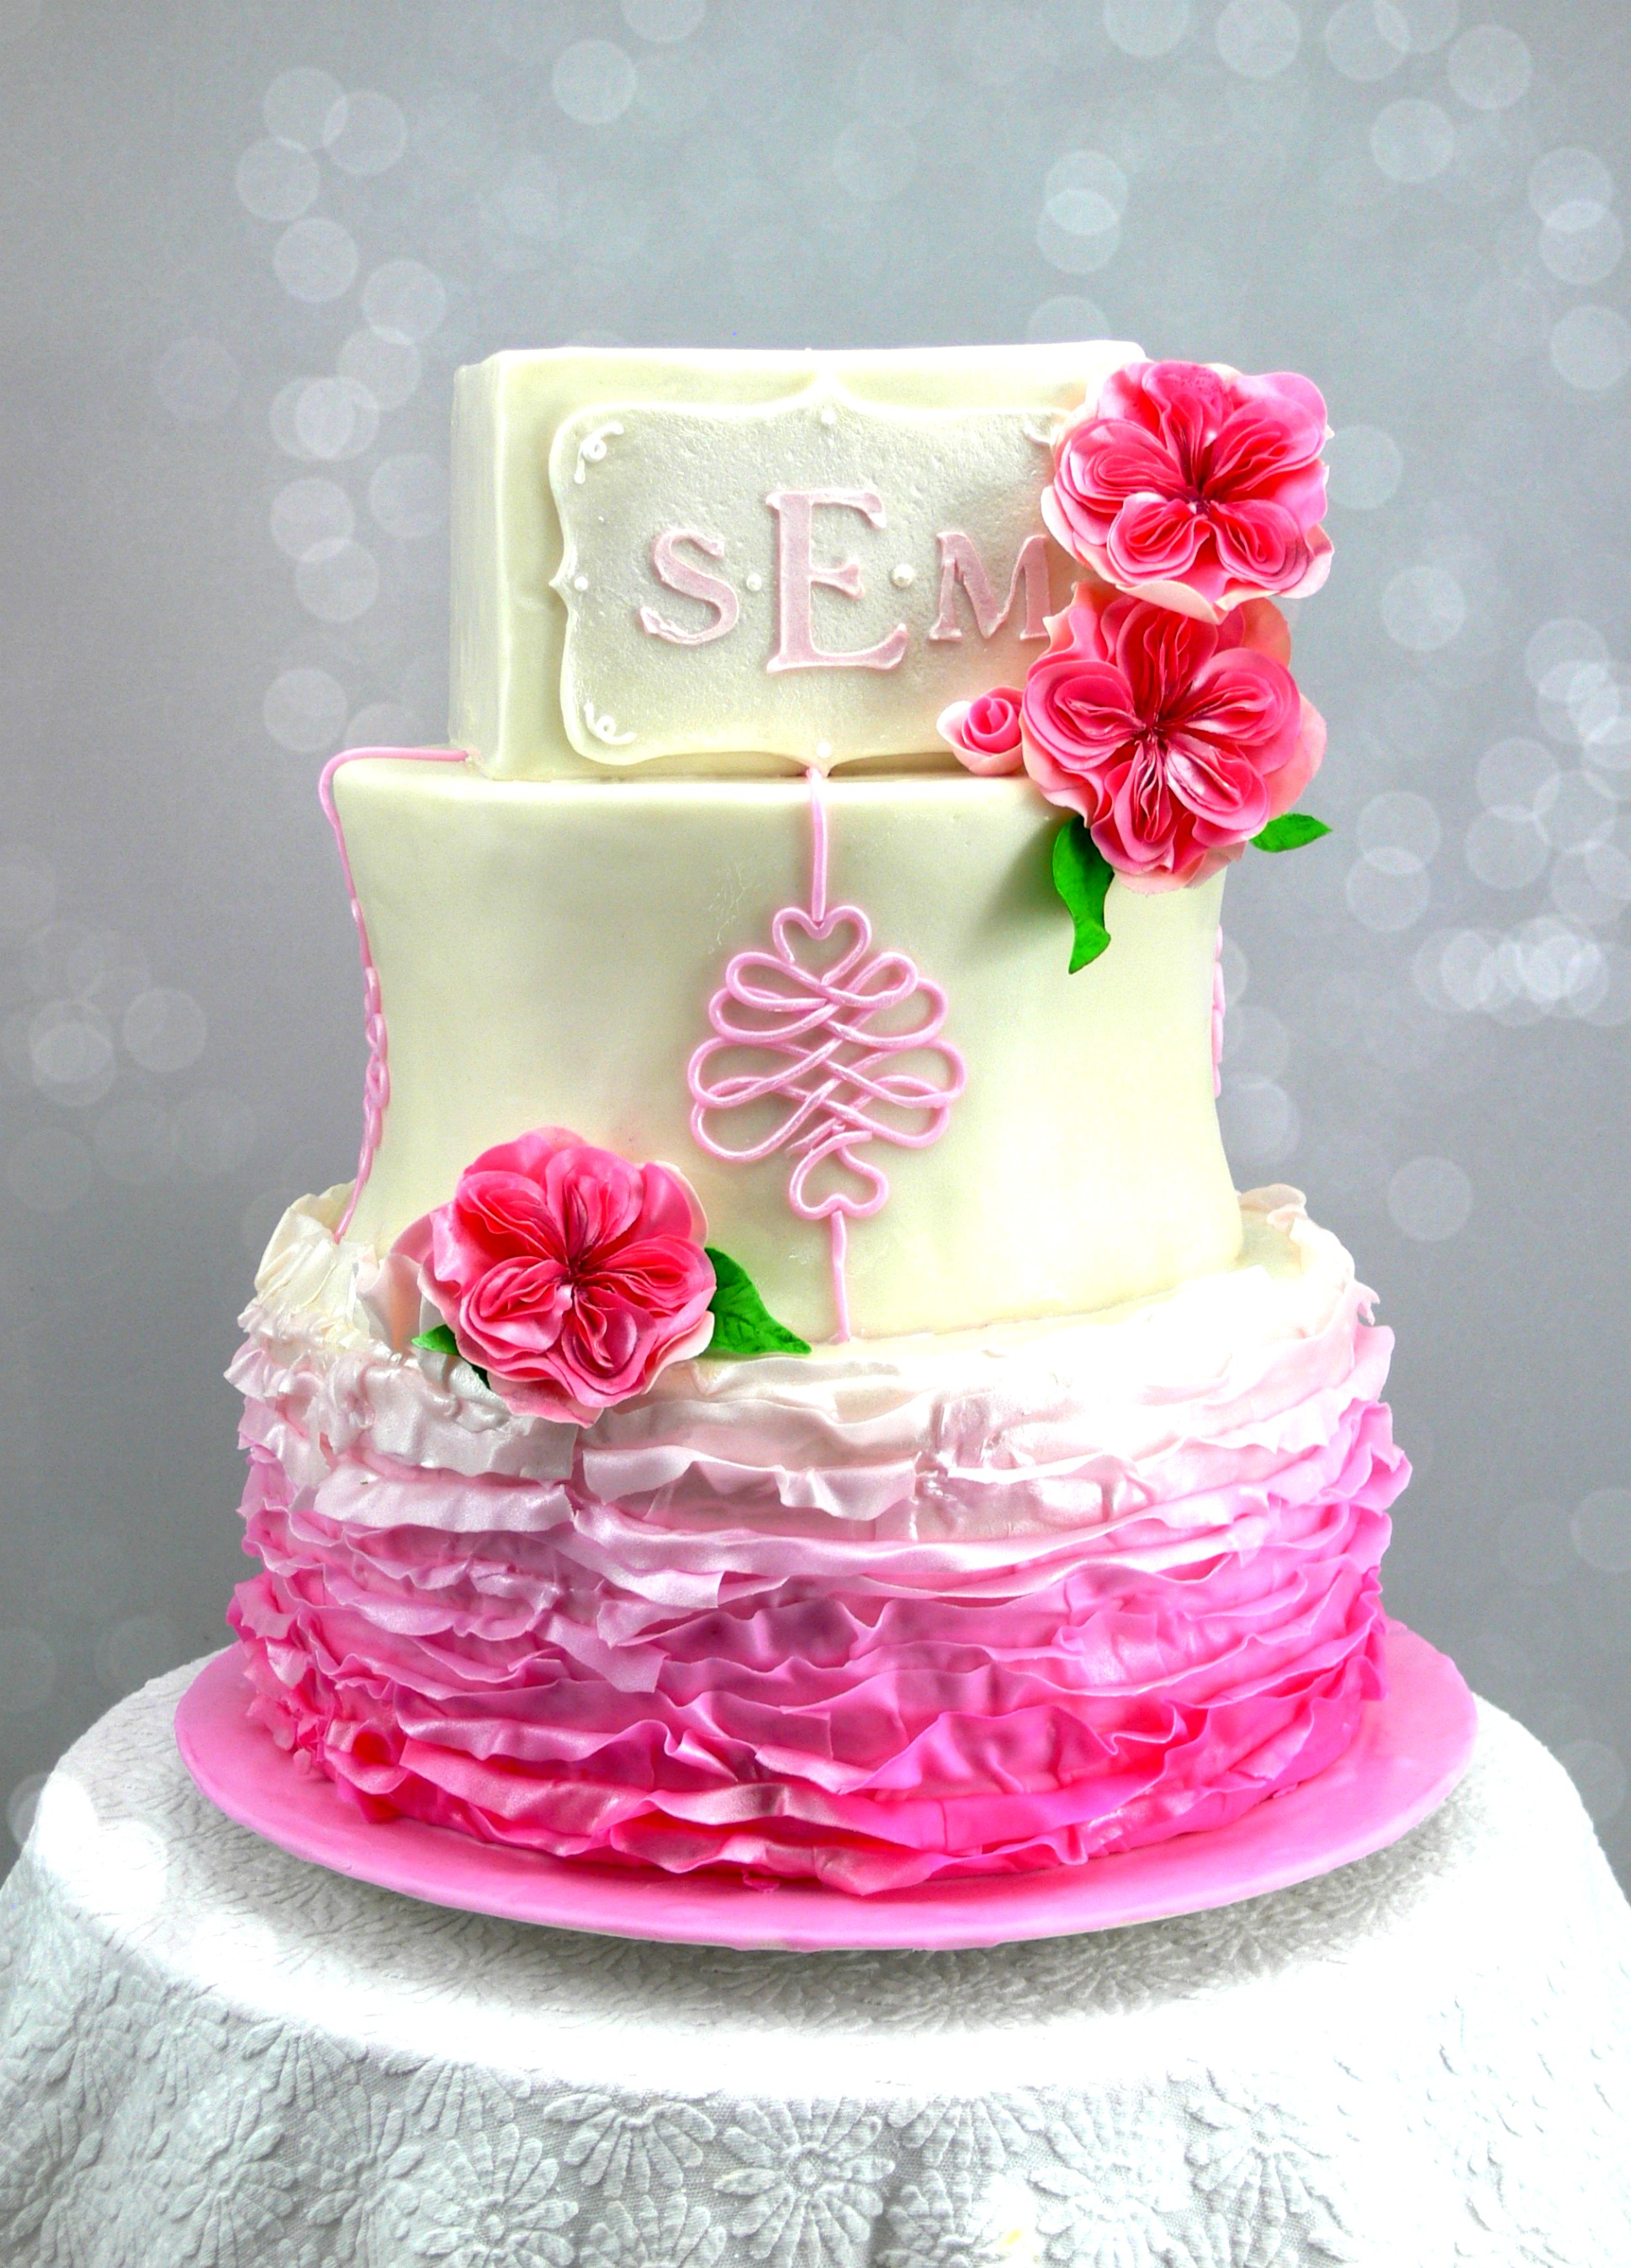 Angela christening cake with pink frills and old fashioned roses.jpg